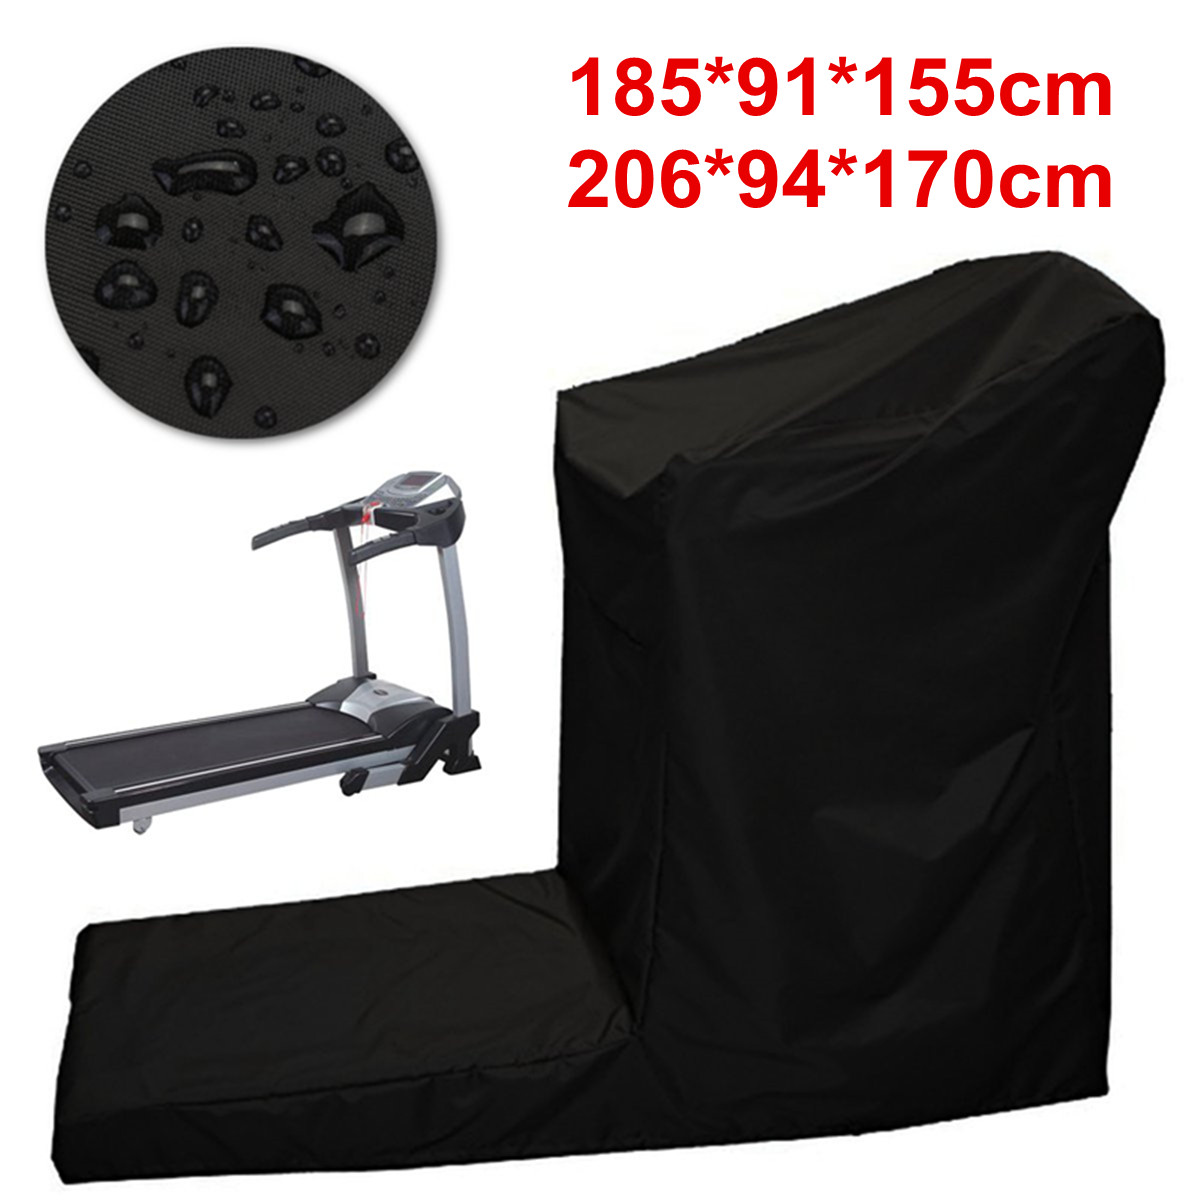 Indoor Outdooor Waterproof Treadmill Cover Running Jogging Machine Dustproof Shelter Protection All-Purpose Dust Covers Black